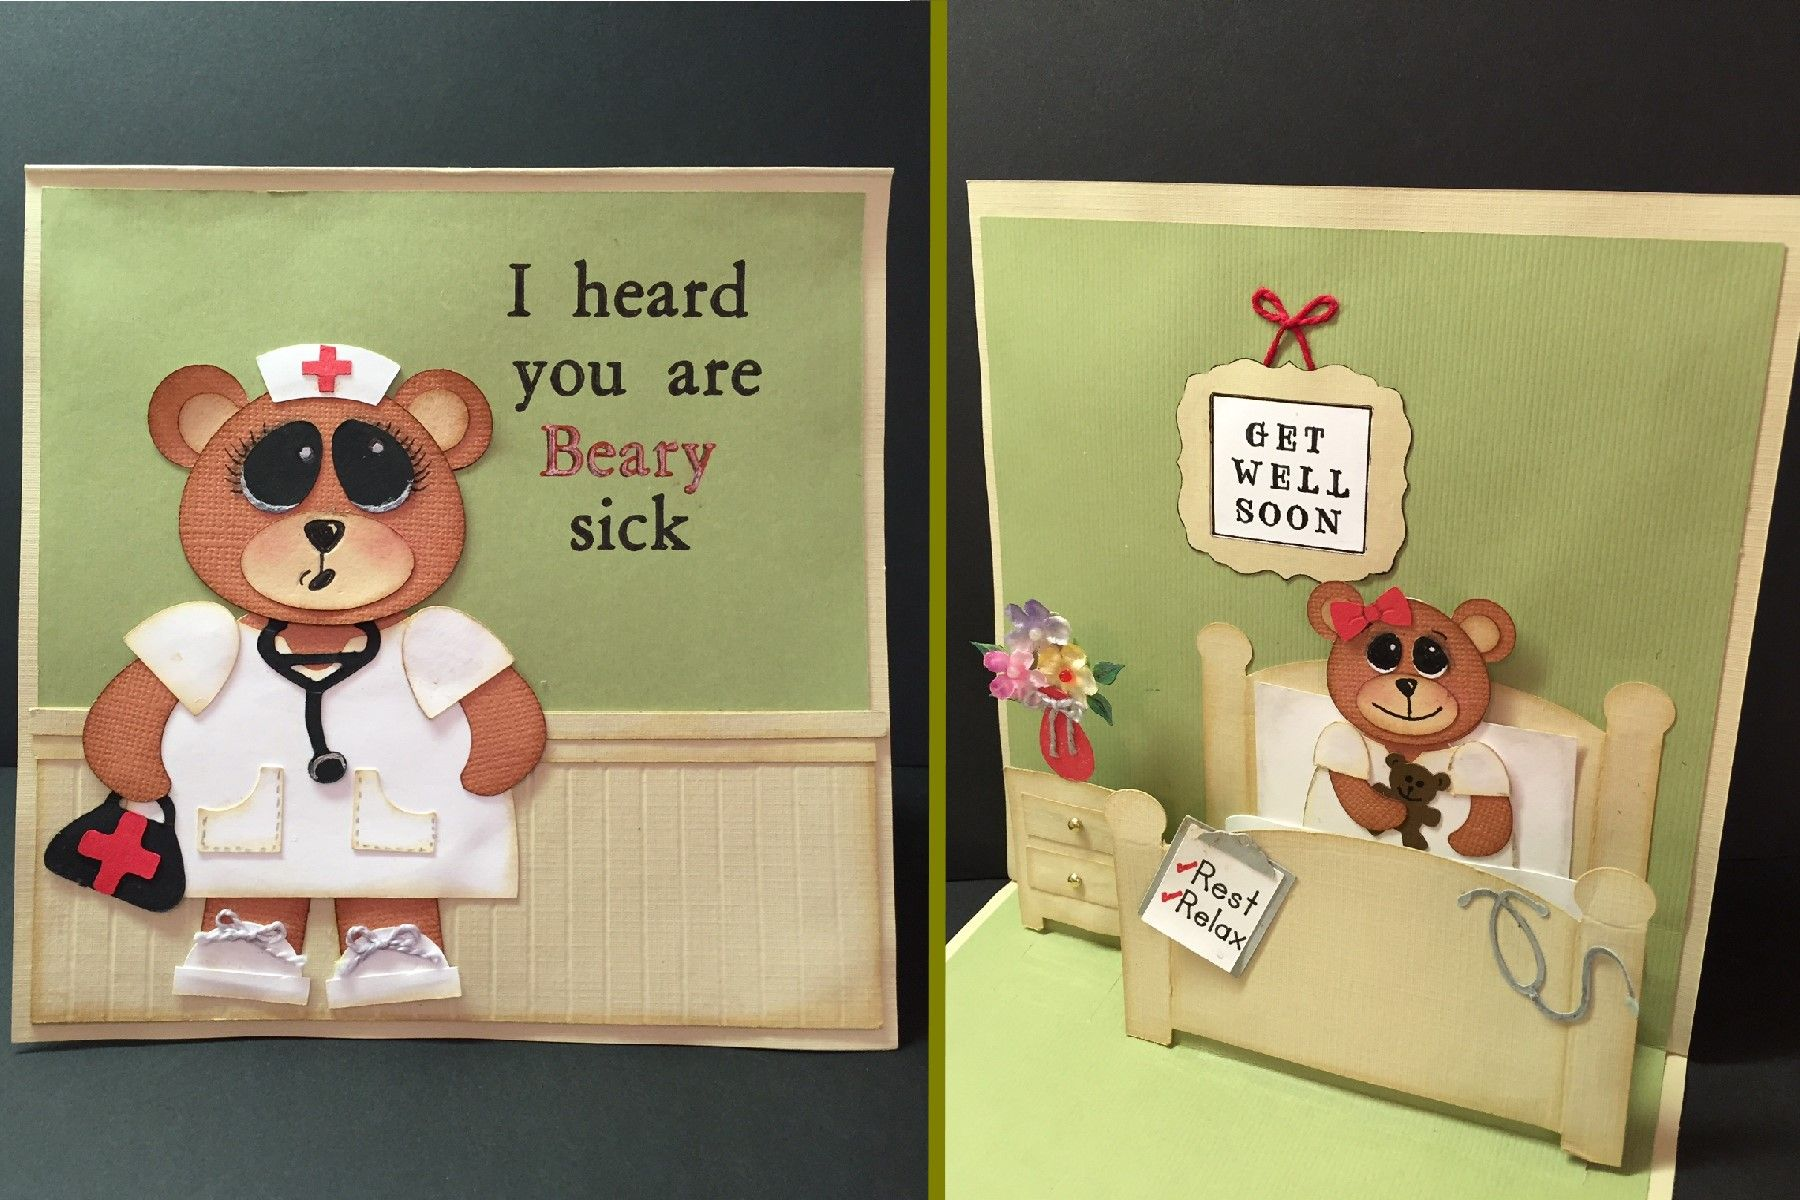 Get Well Soon Bear Pop Up Card Made With Basic Shapes On Cricut Explore Cards Card Making Basic Shapes